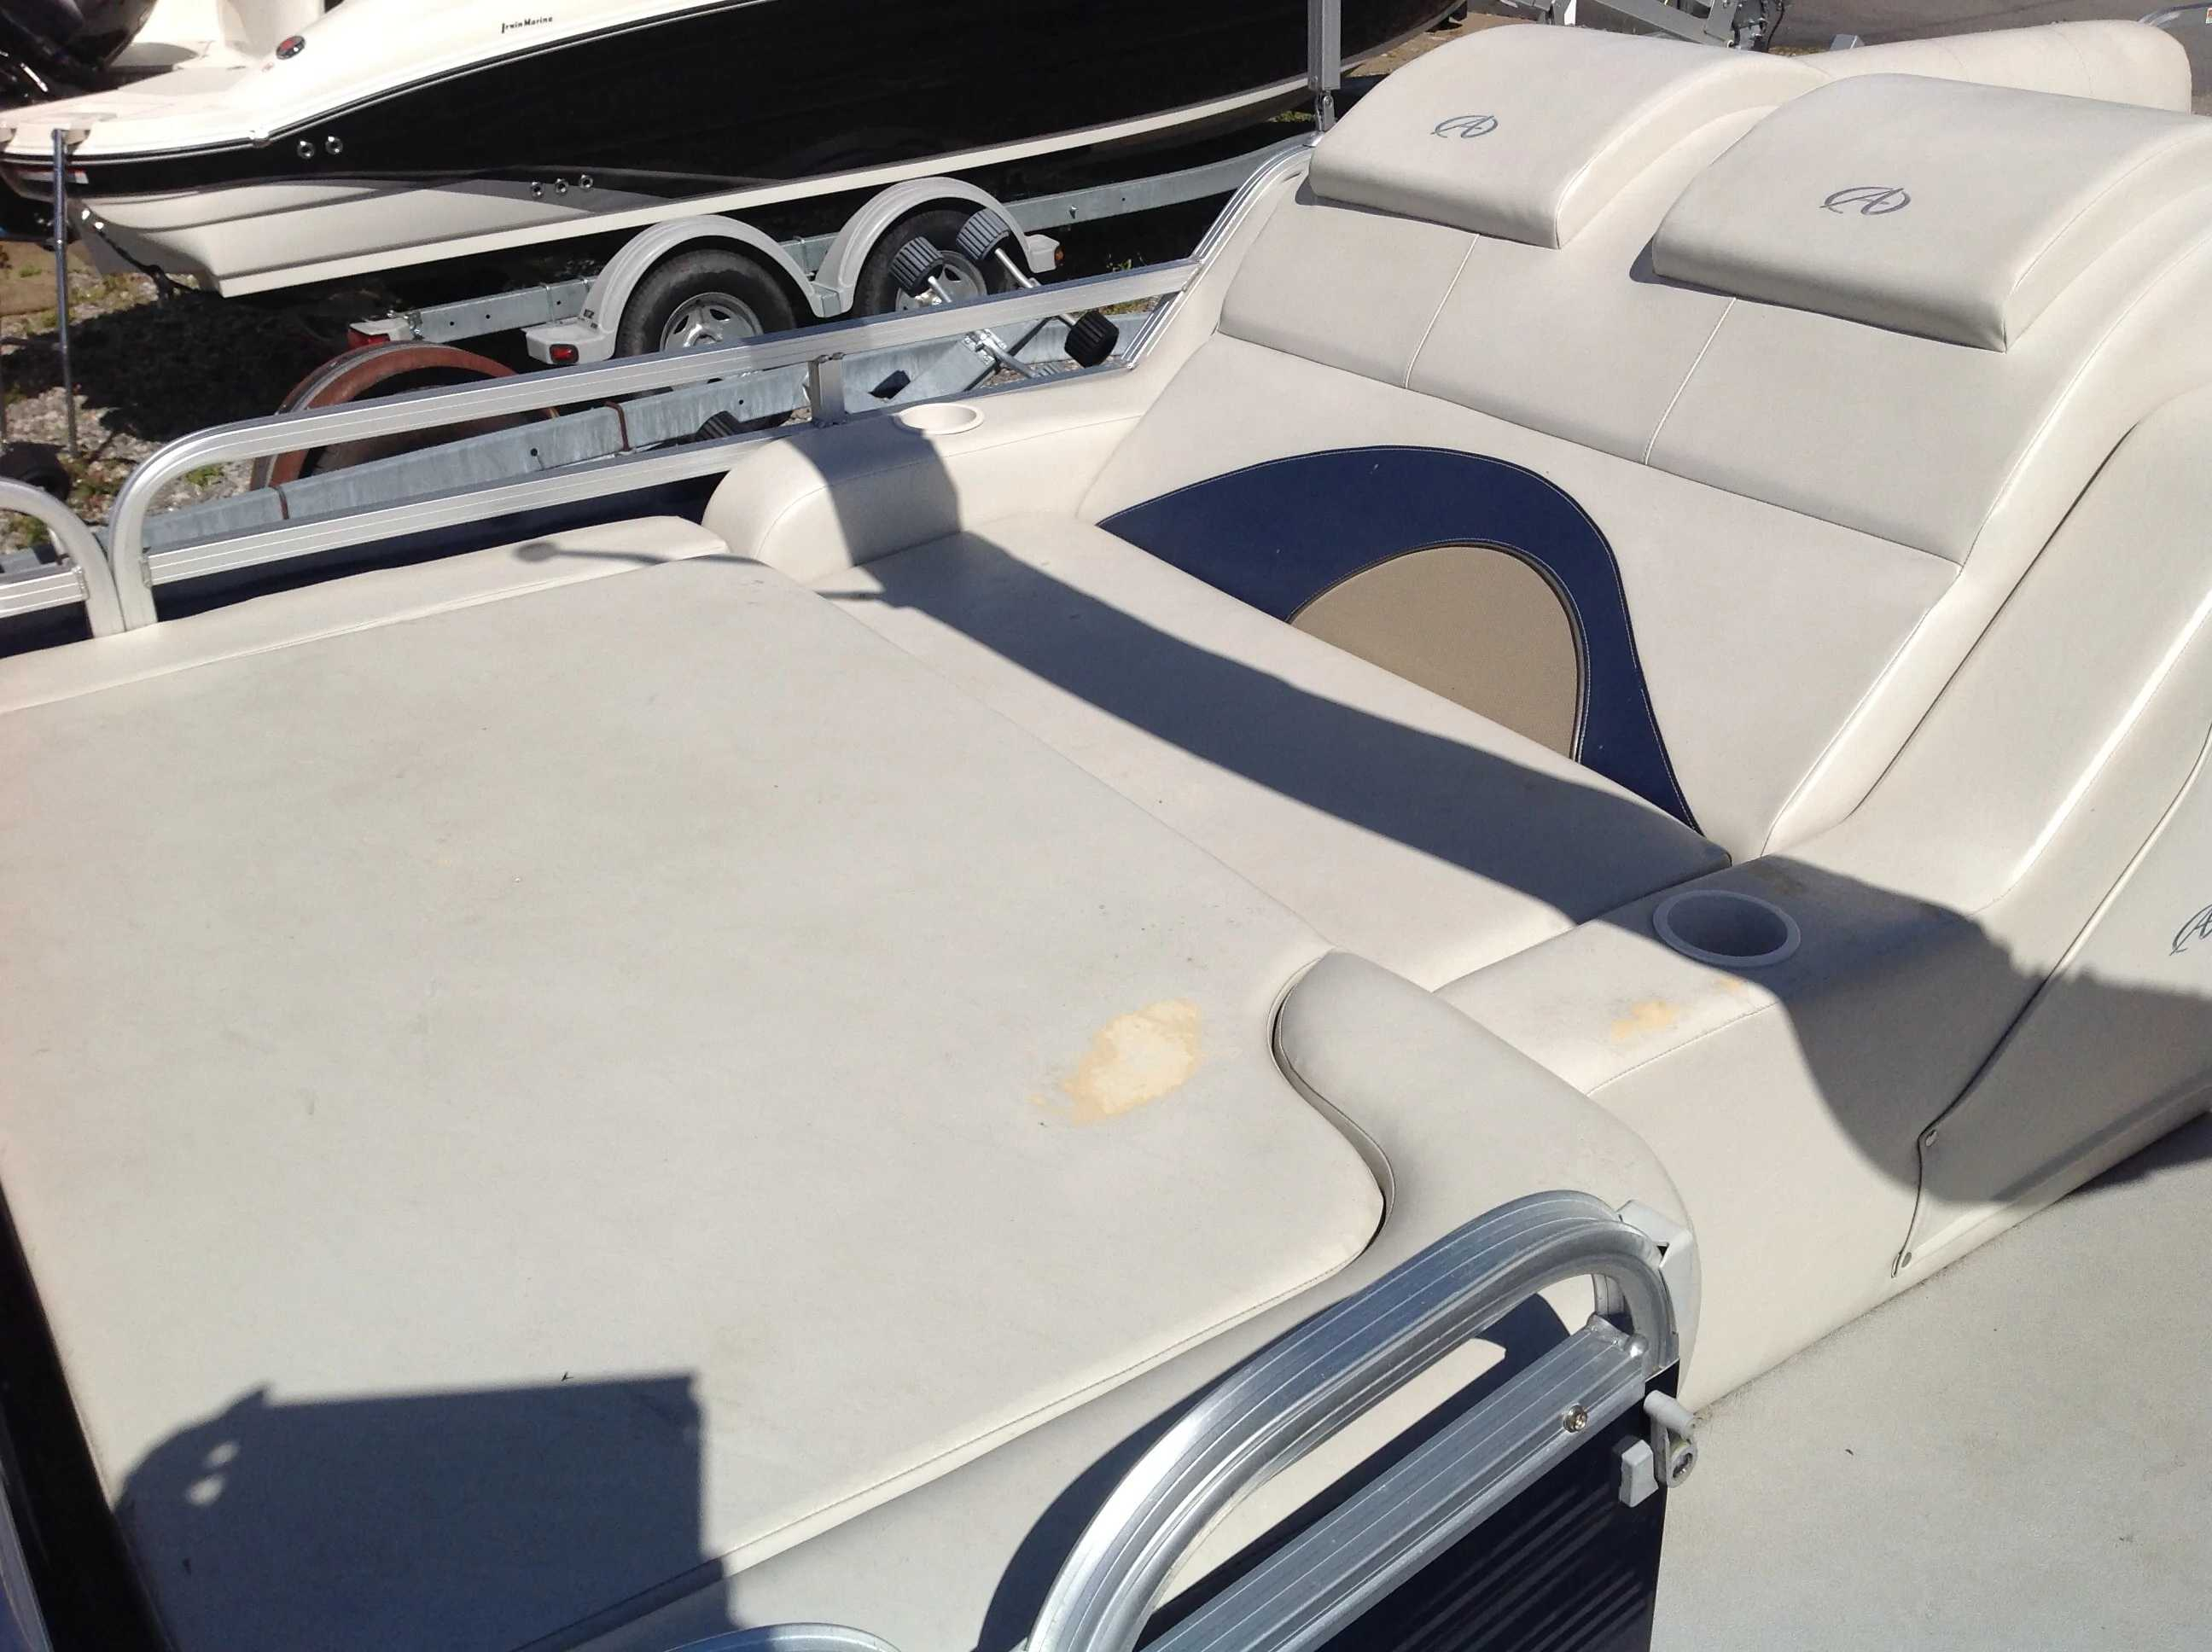 2012 Avalon boat for sale, model of the boat is Catalina Drl 2485 & Image # 12 of 14